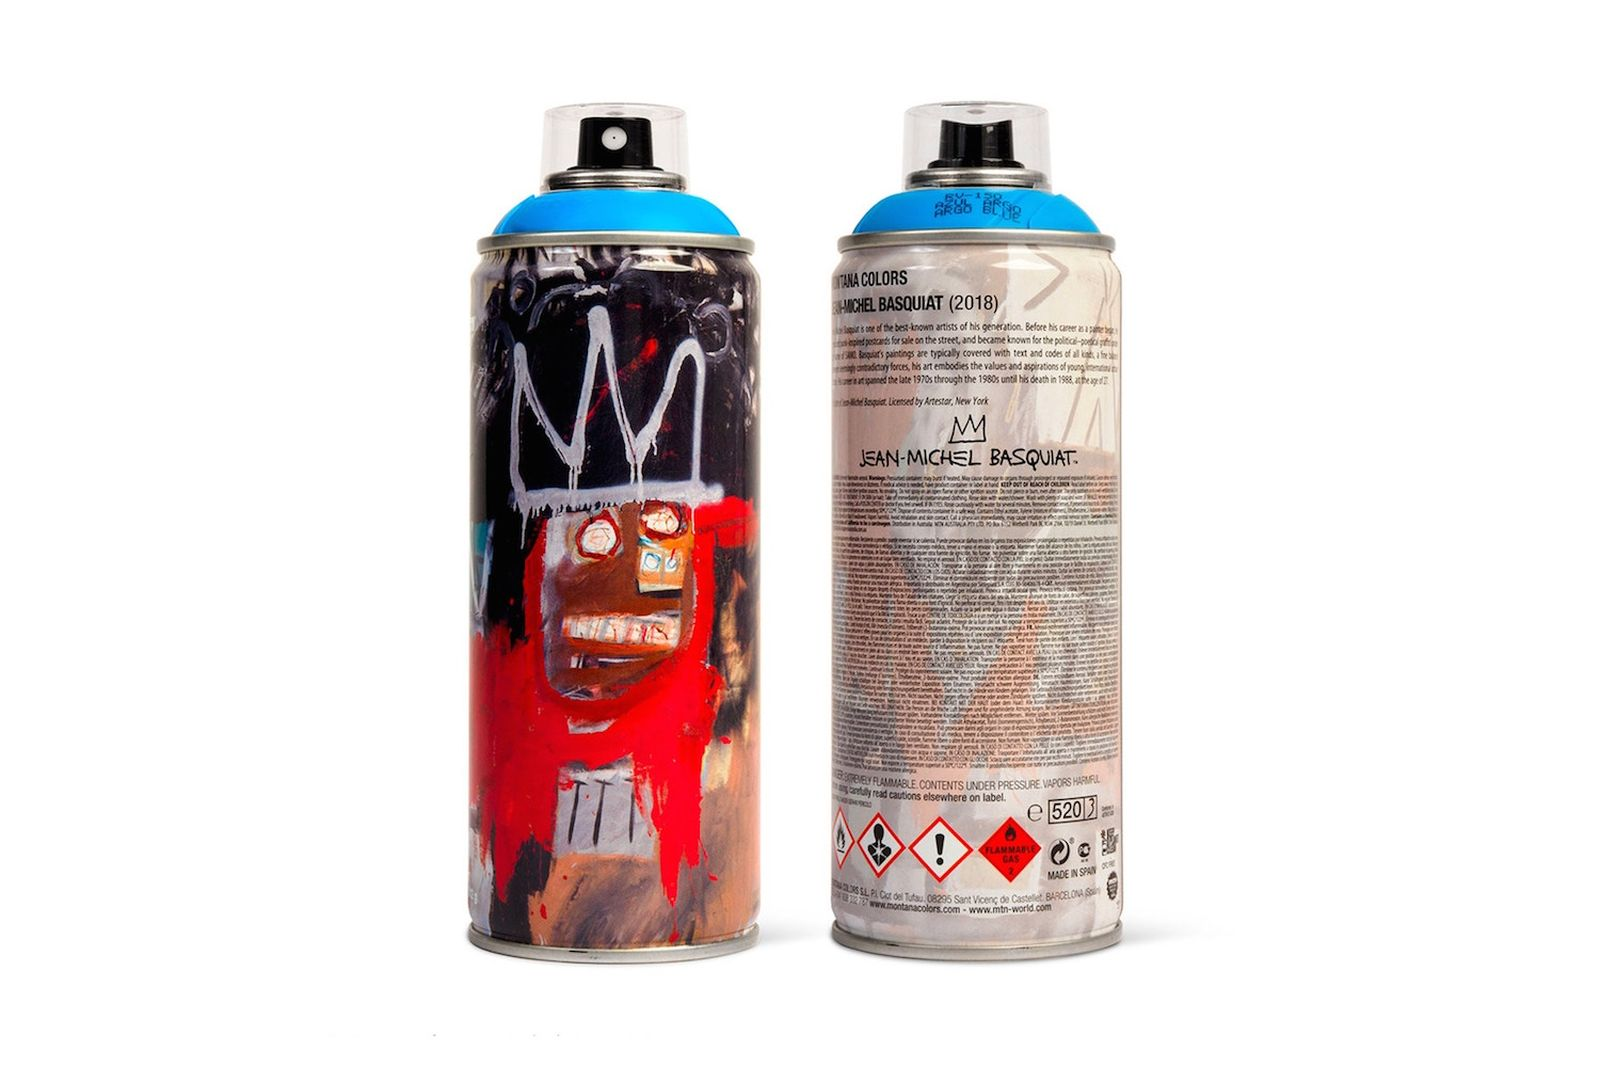 jean-michel-basquiat-keith-haring-spray-paint-cans-01